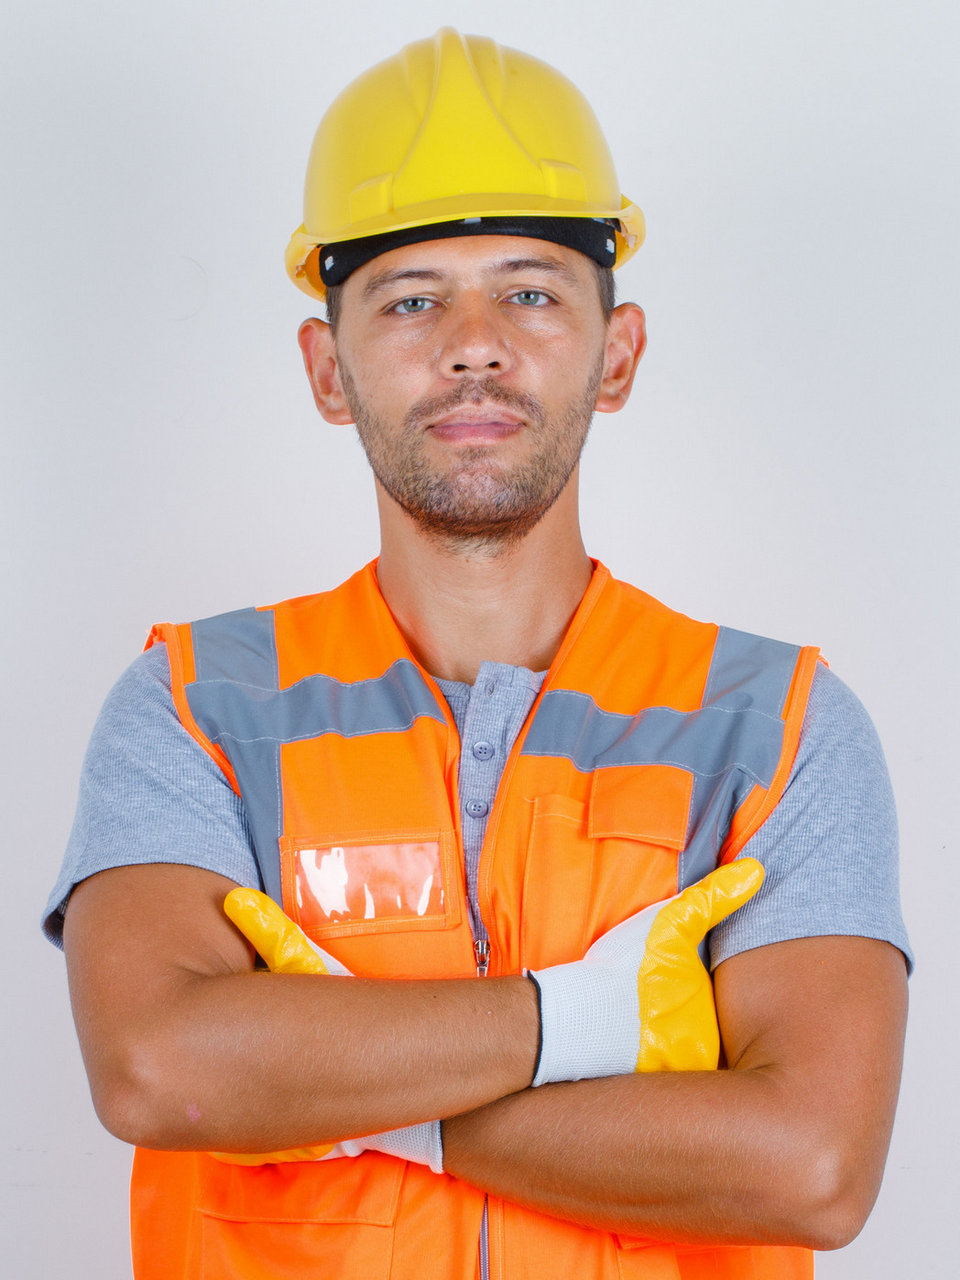 Male builder in uniform standing with crossed arms and looking confident , front view.